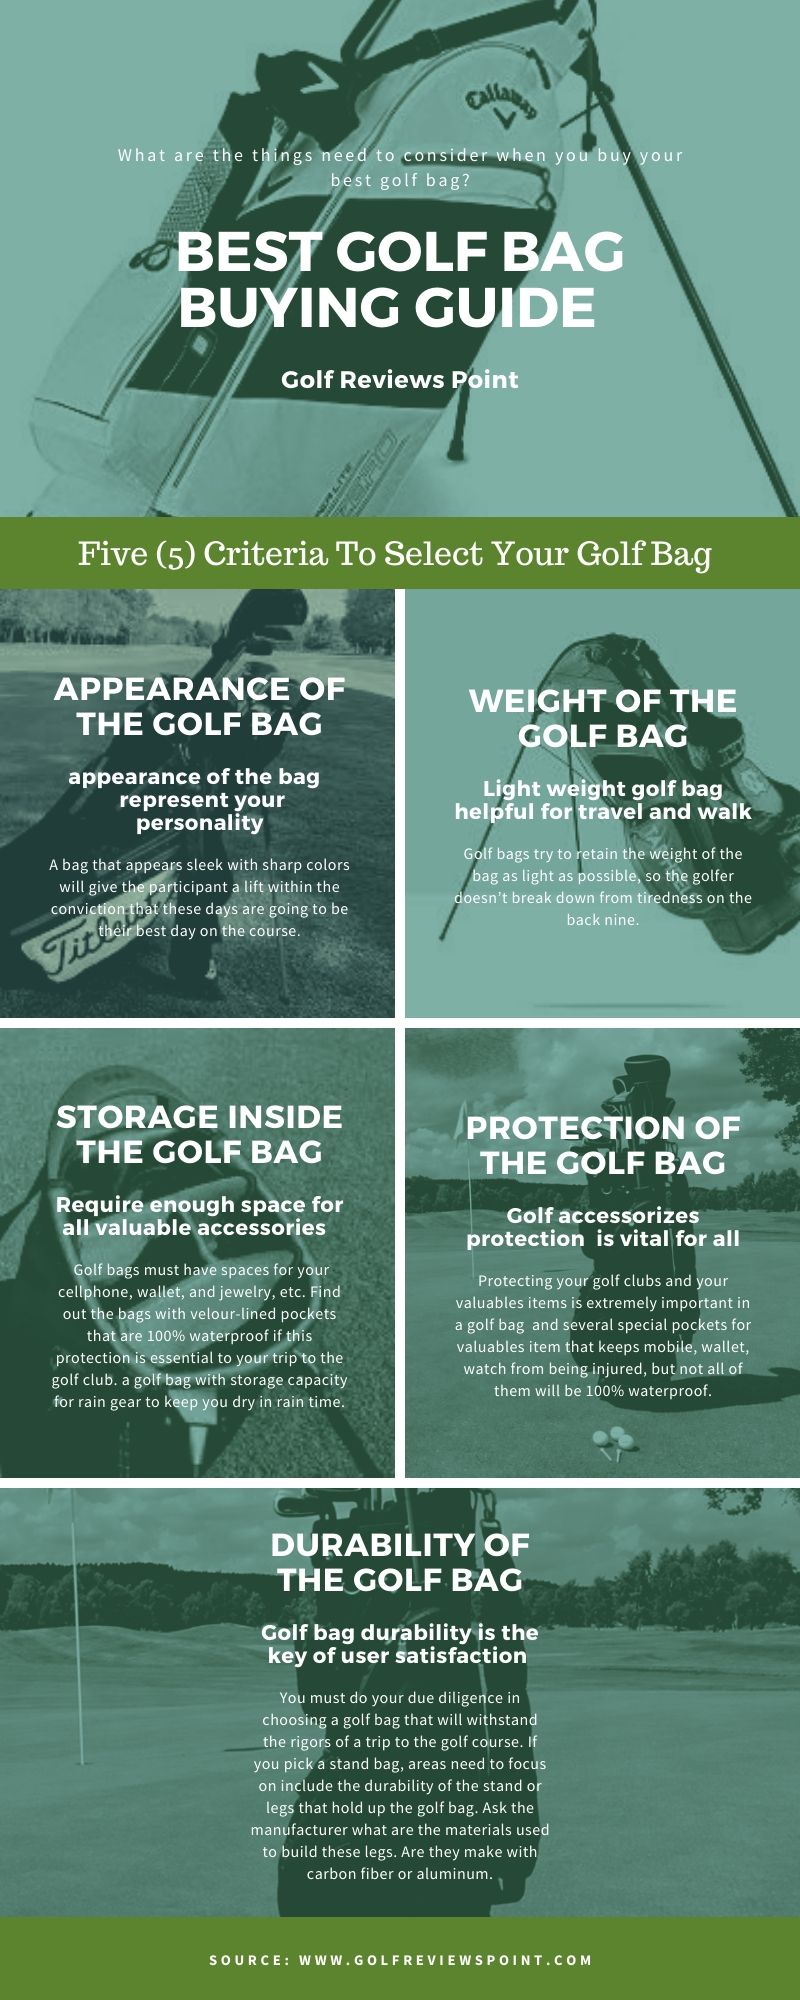 Buying Guide of Best Golf Bag for Walkers